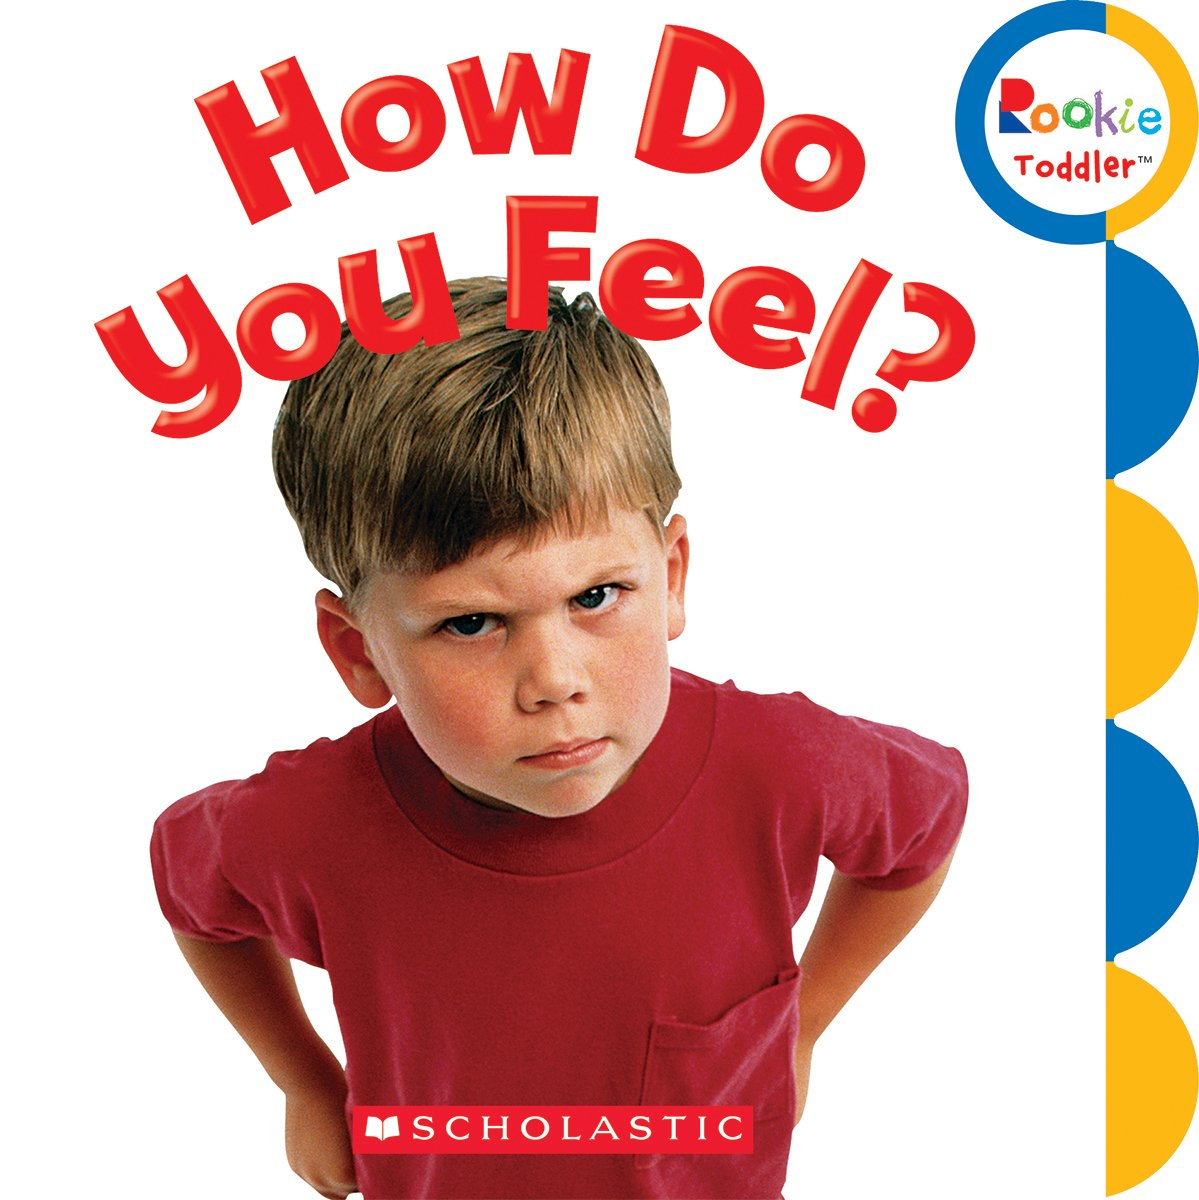 How Do You Feel? (Rookie Toddler)